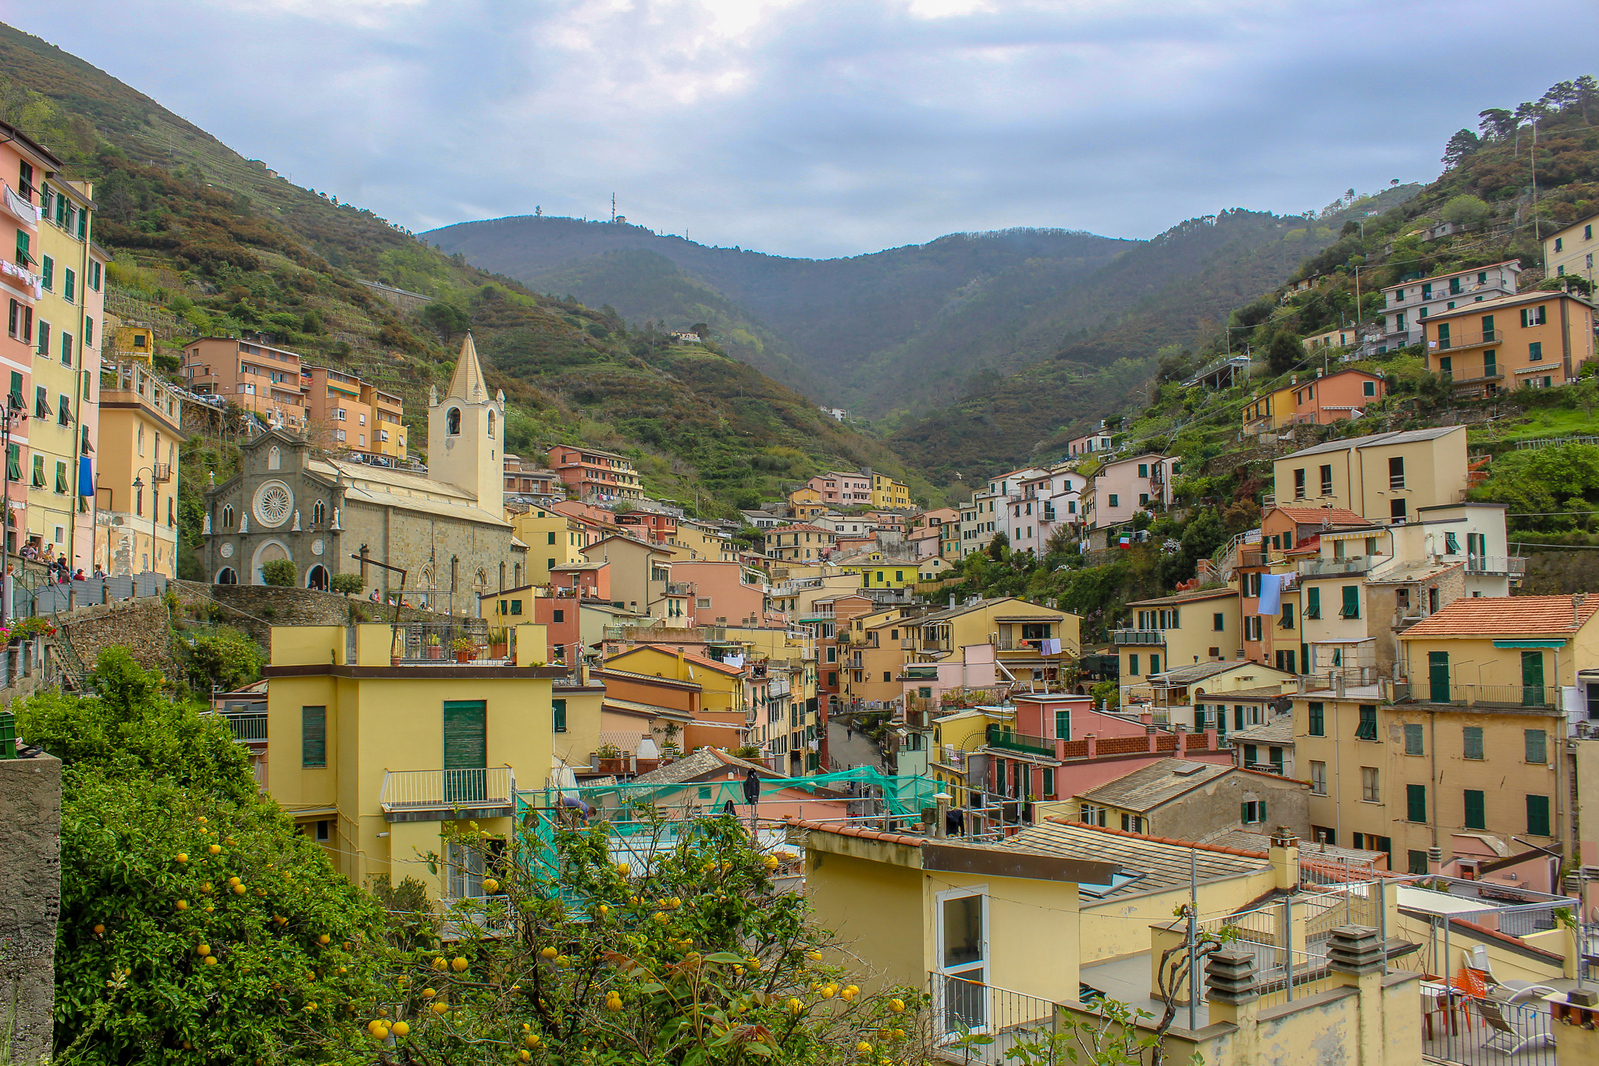 need the best place to stay in cinque terre? look no further